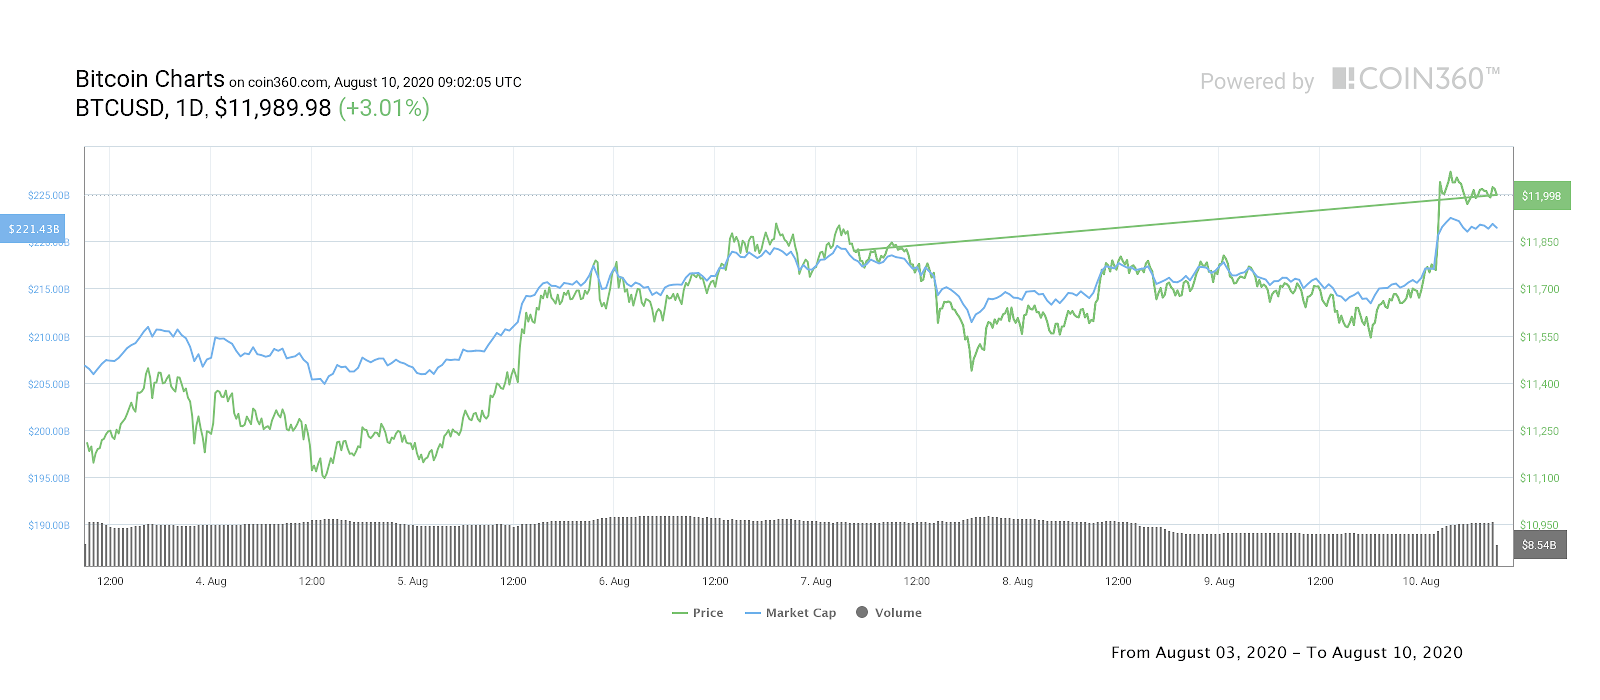 BTC / USD 7-day price chart